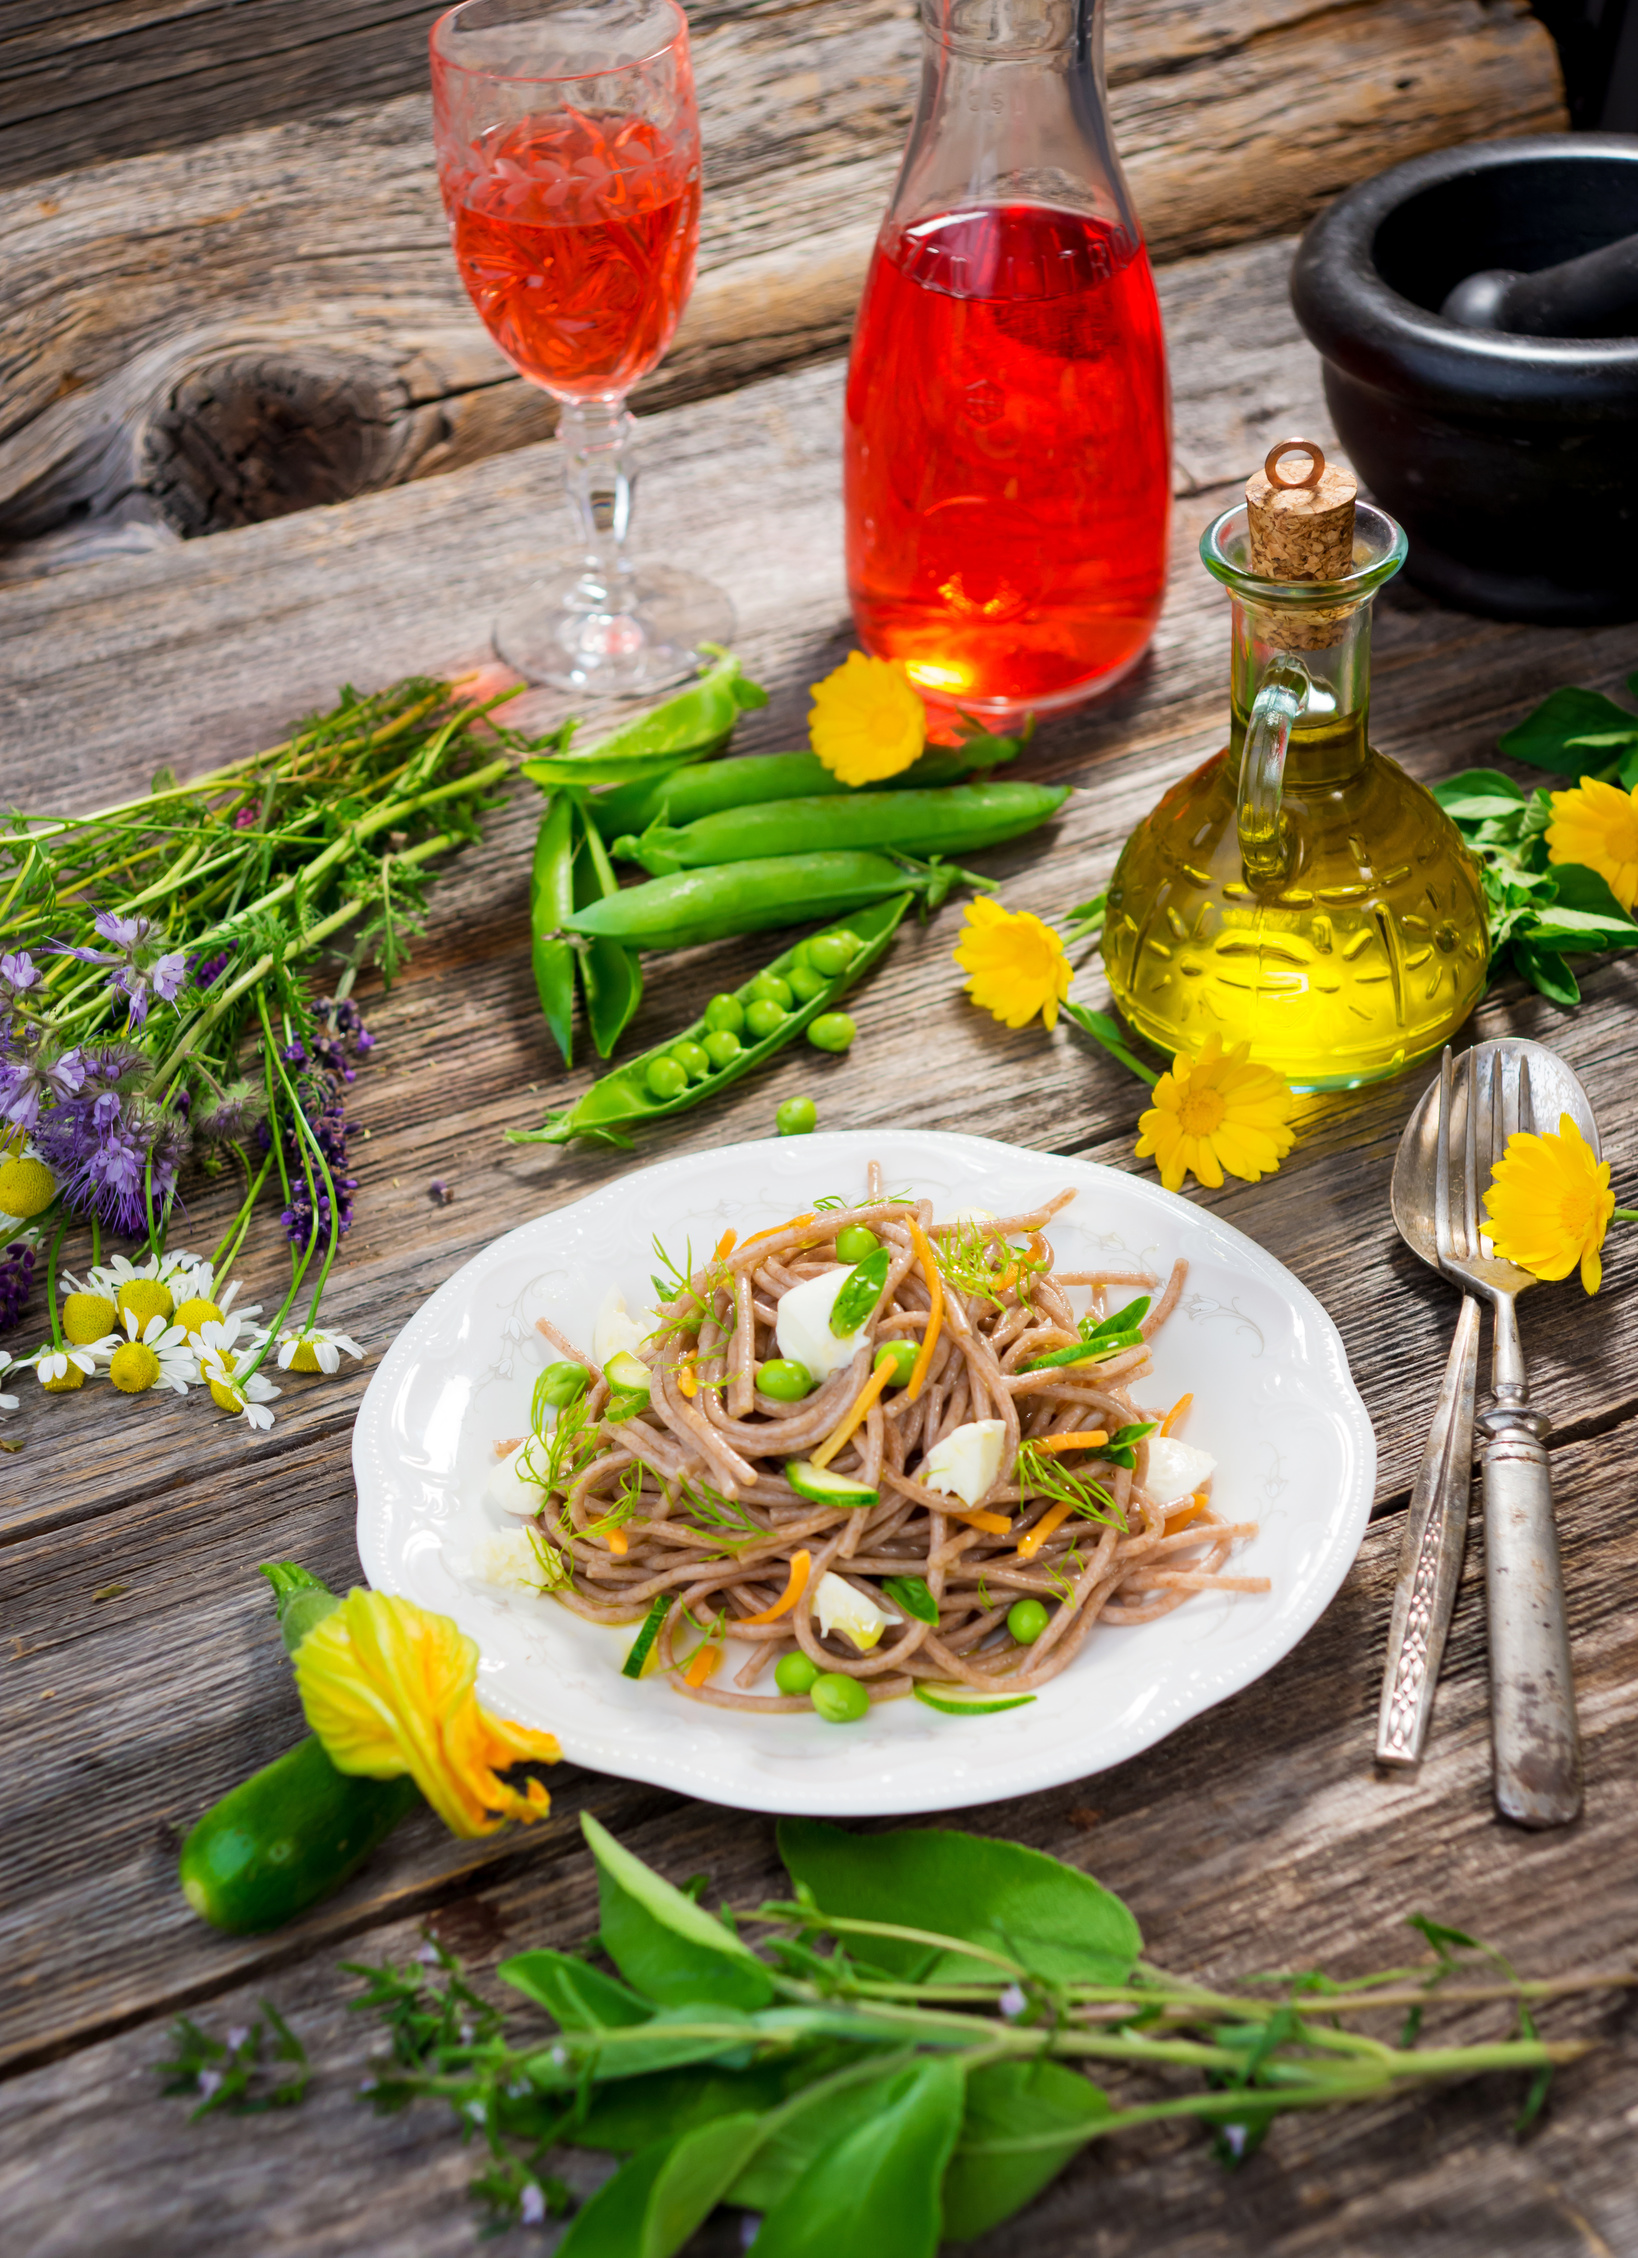 Whole Grain pasta with peas on wooden table surrounded by fresh flowers and veggies